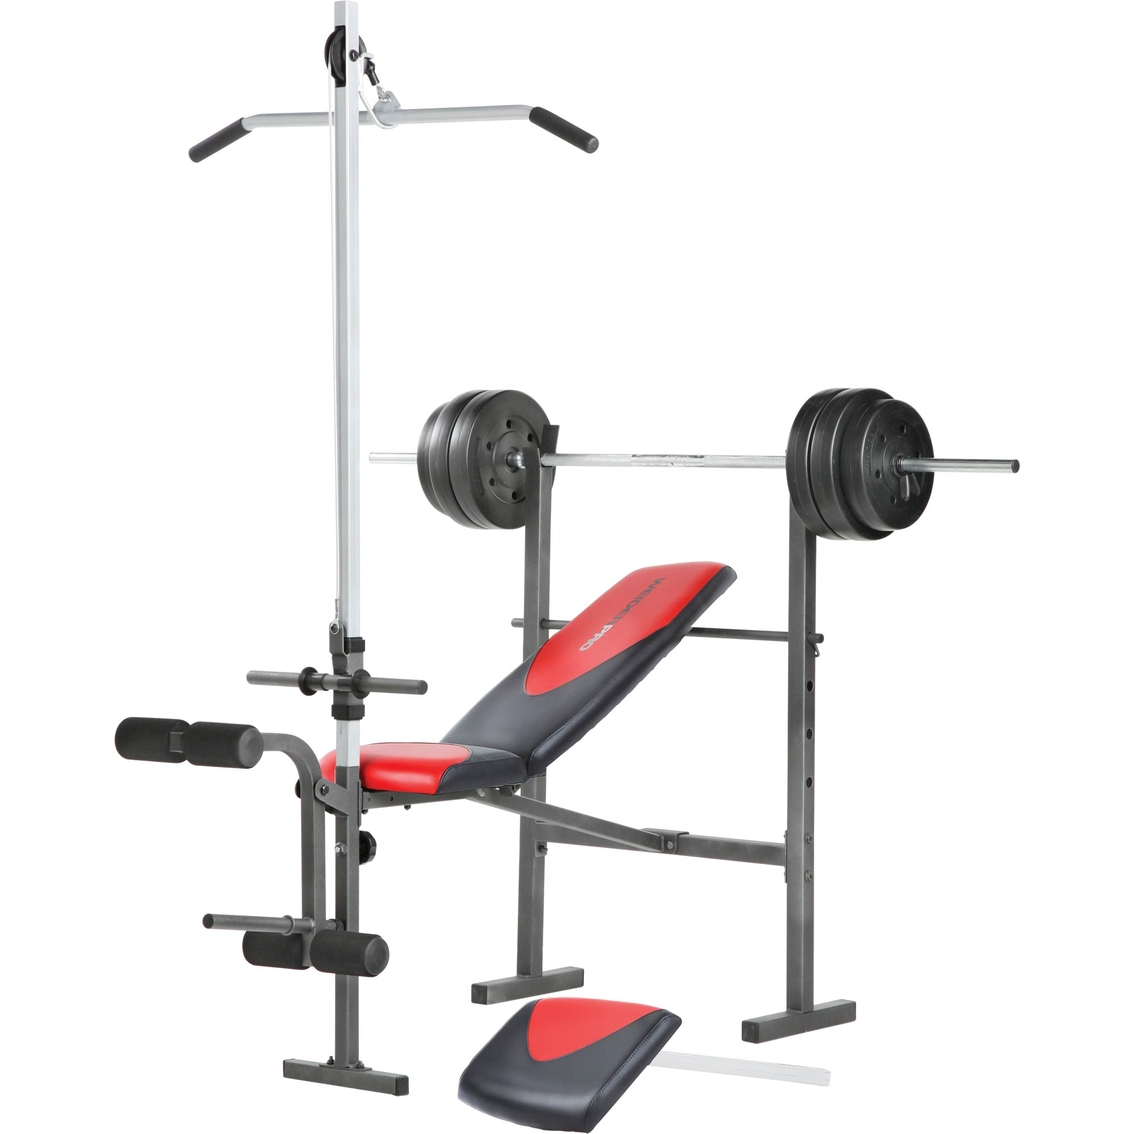 Weider pro 256 weight bench combo set exercise fitness more shop the exchange Weight set and bench